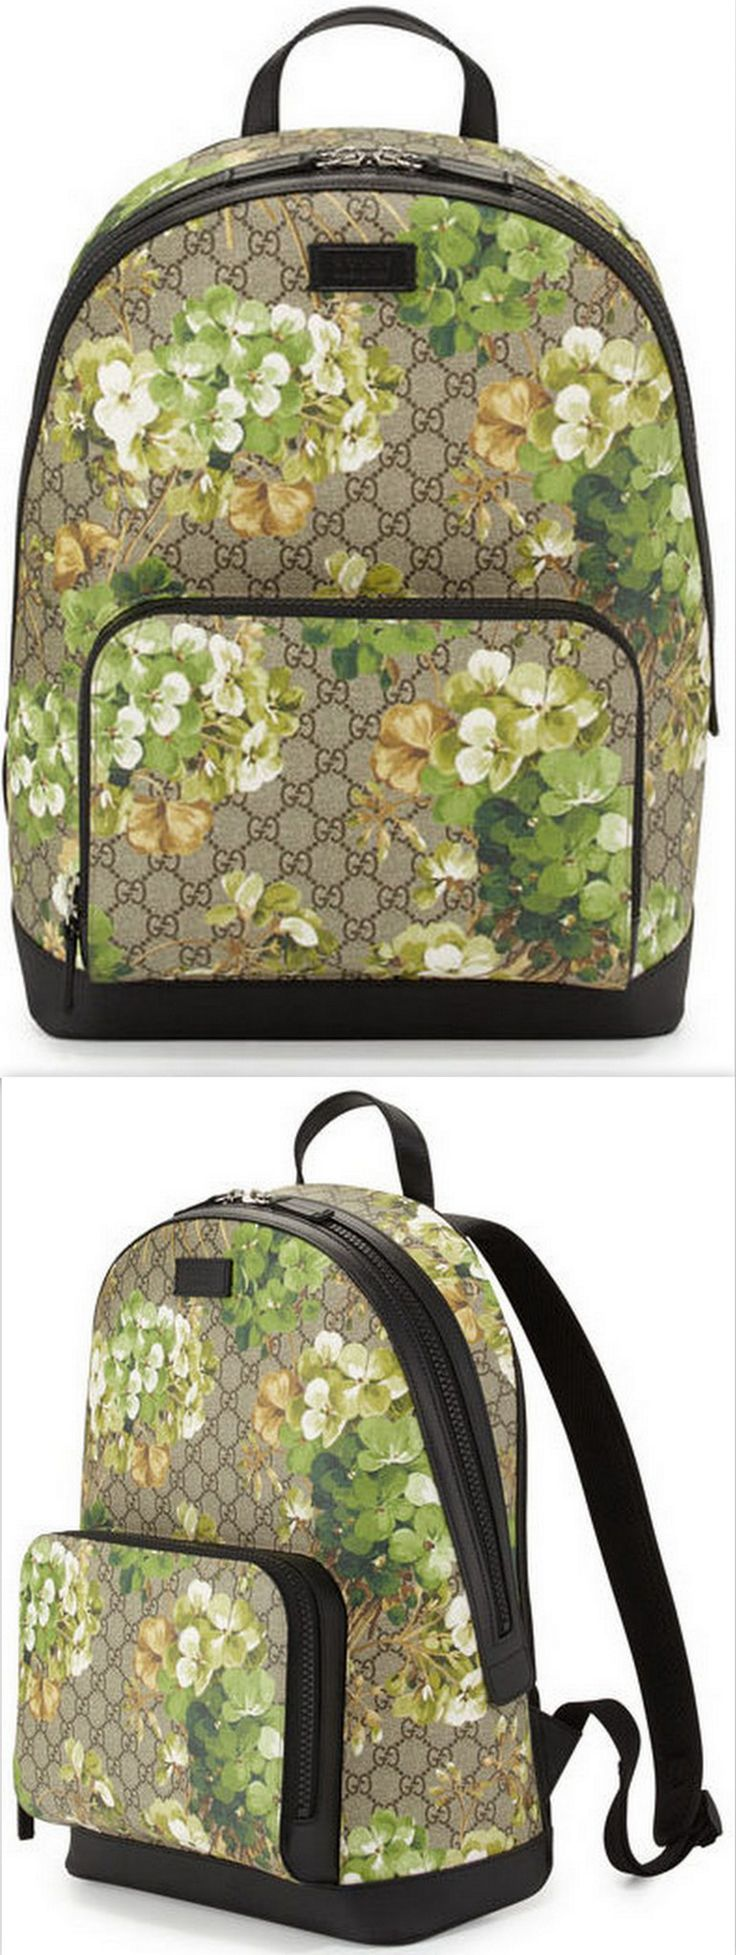 GG Blooms Canvas Backpack - Green Multi